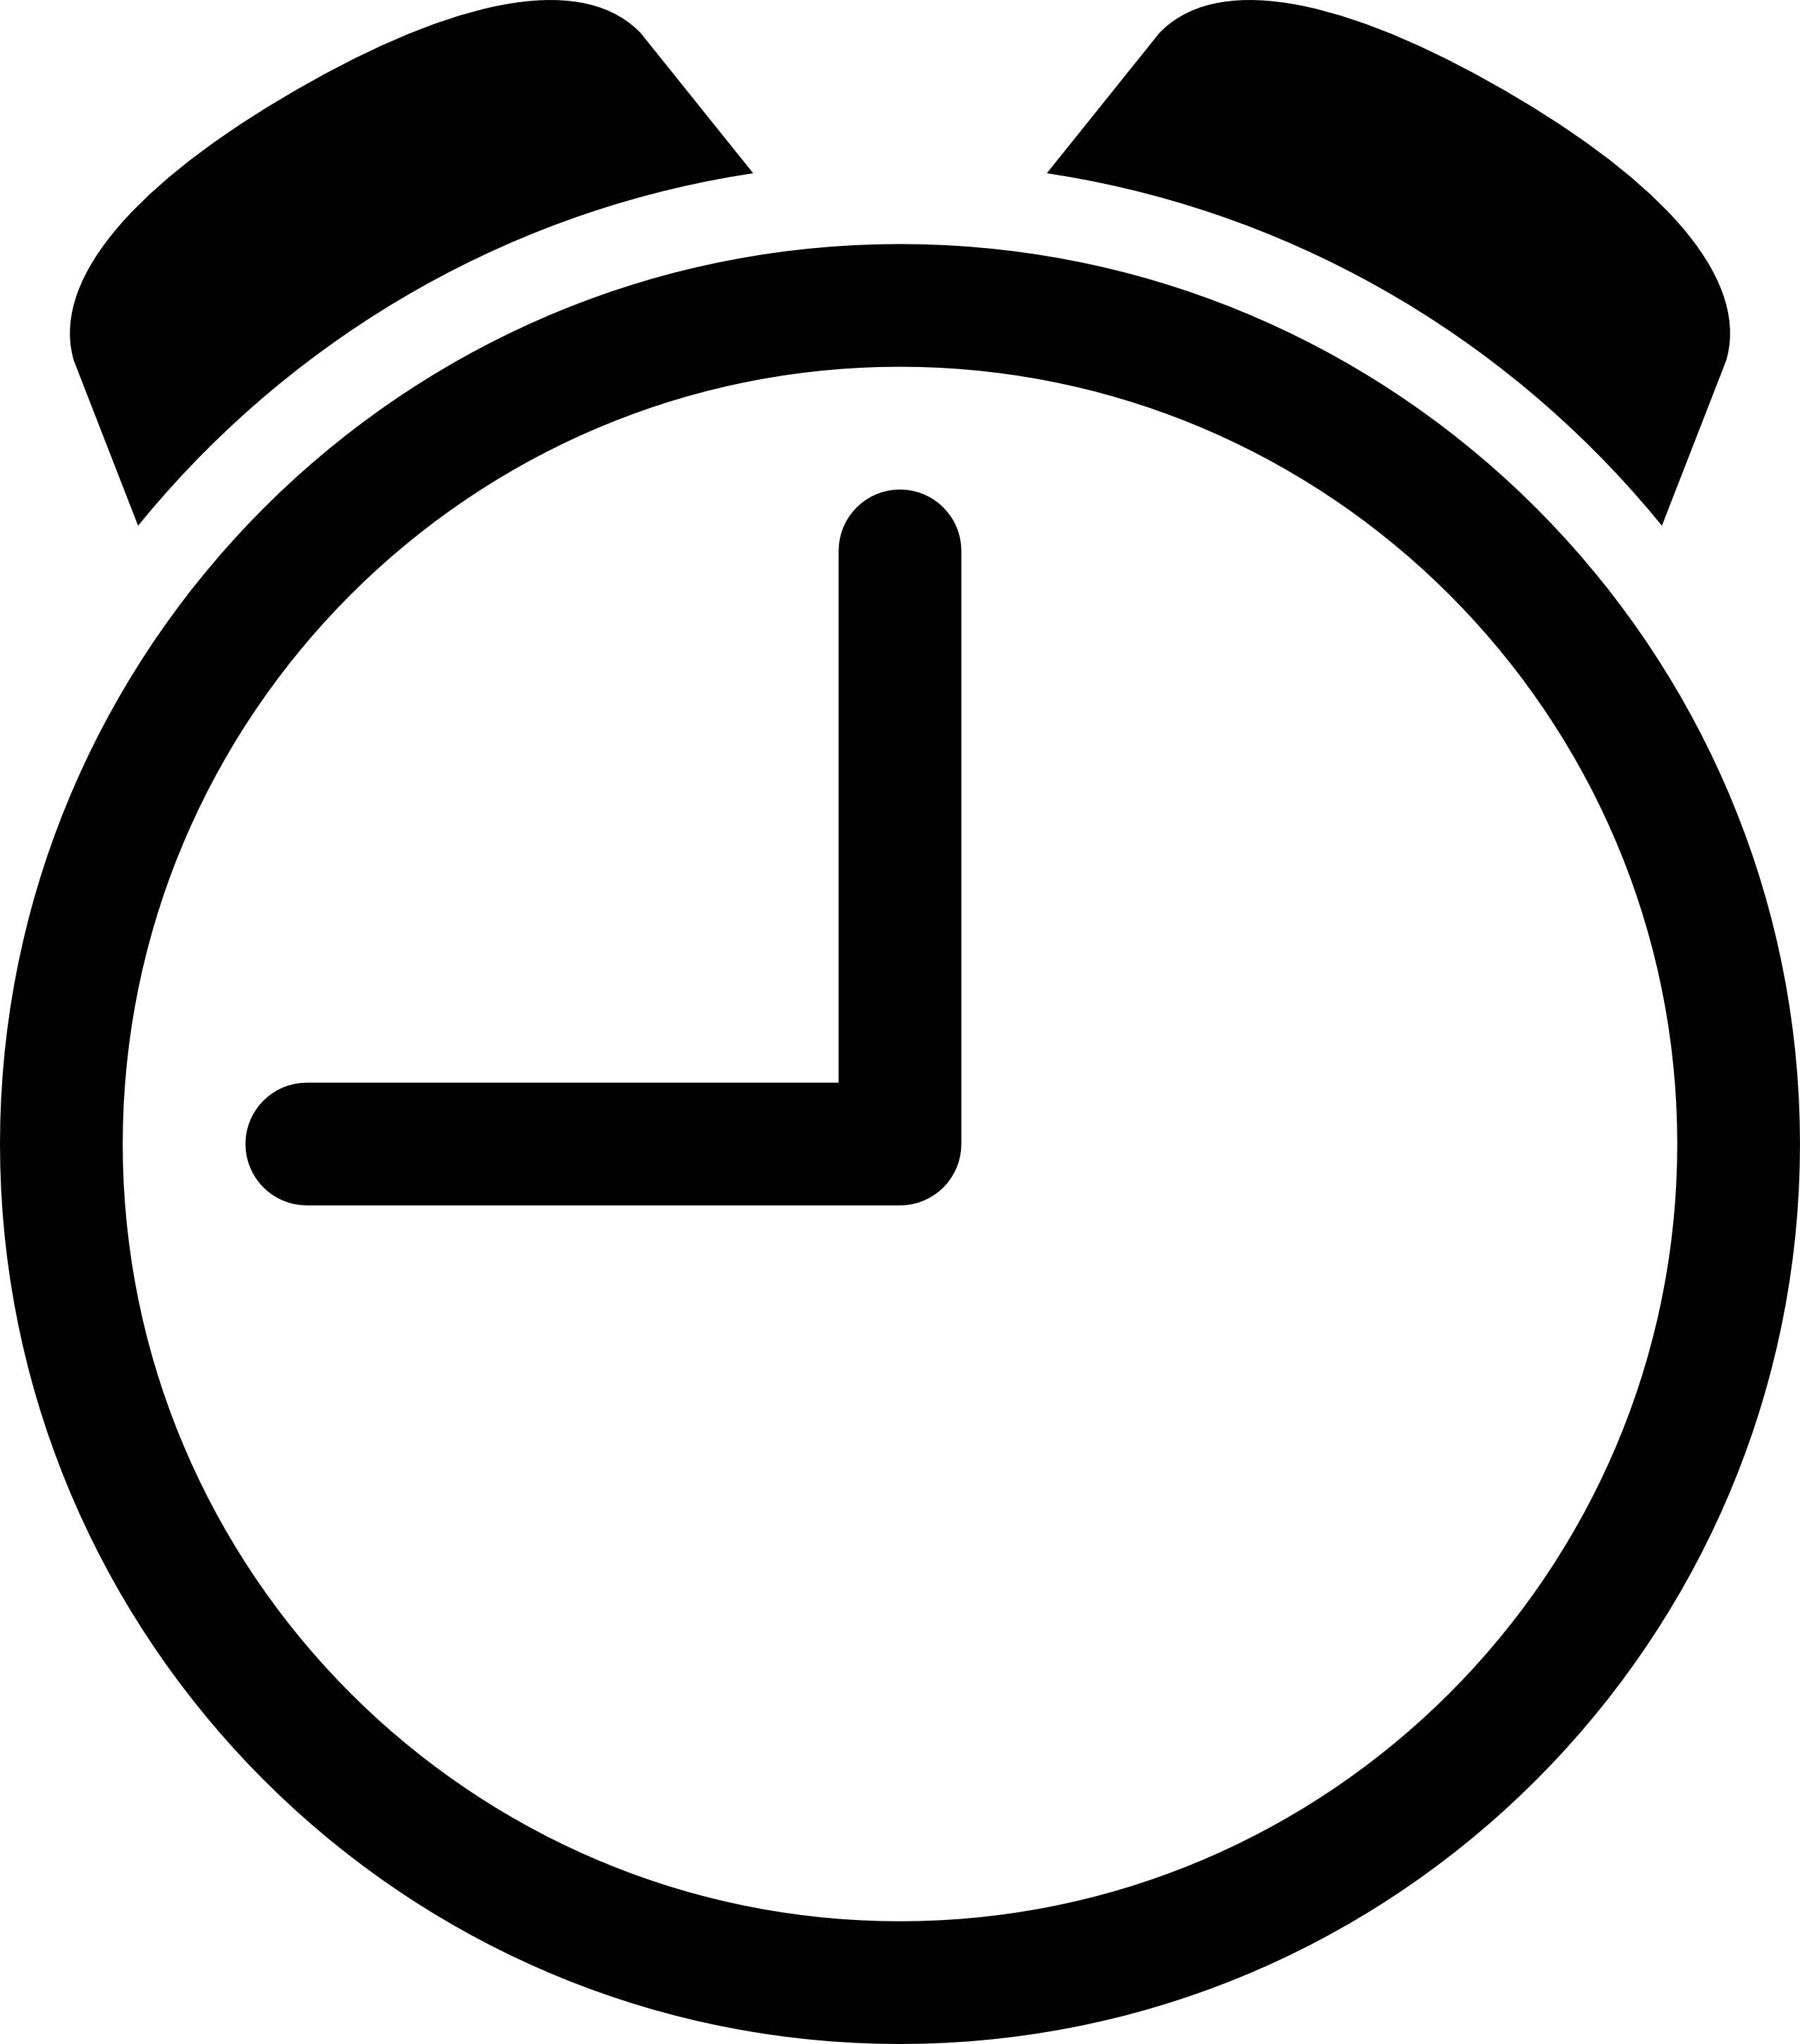 Clock transparent png pictures. Clocks clipart half past